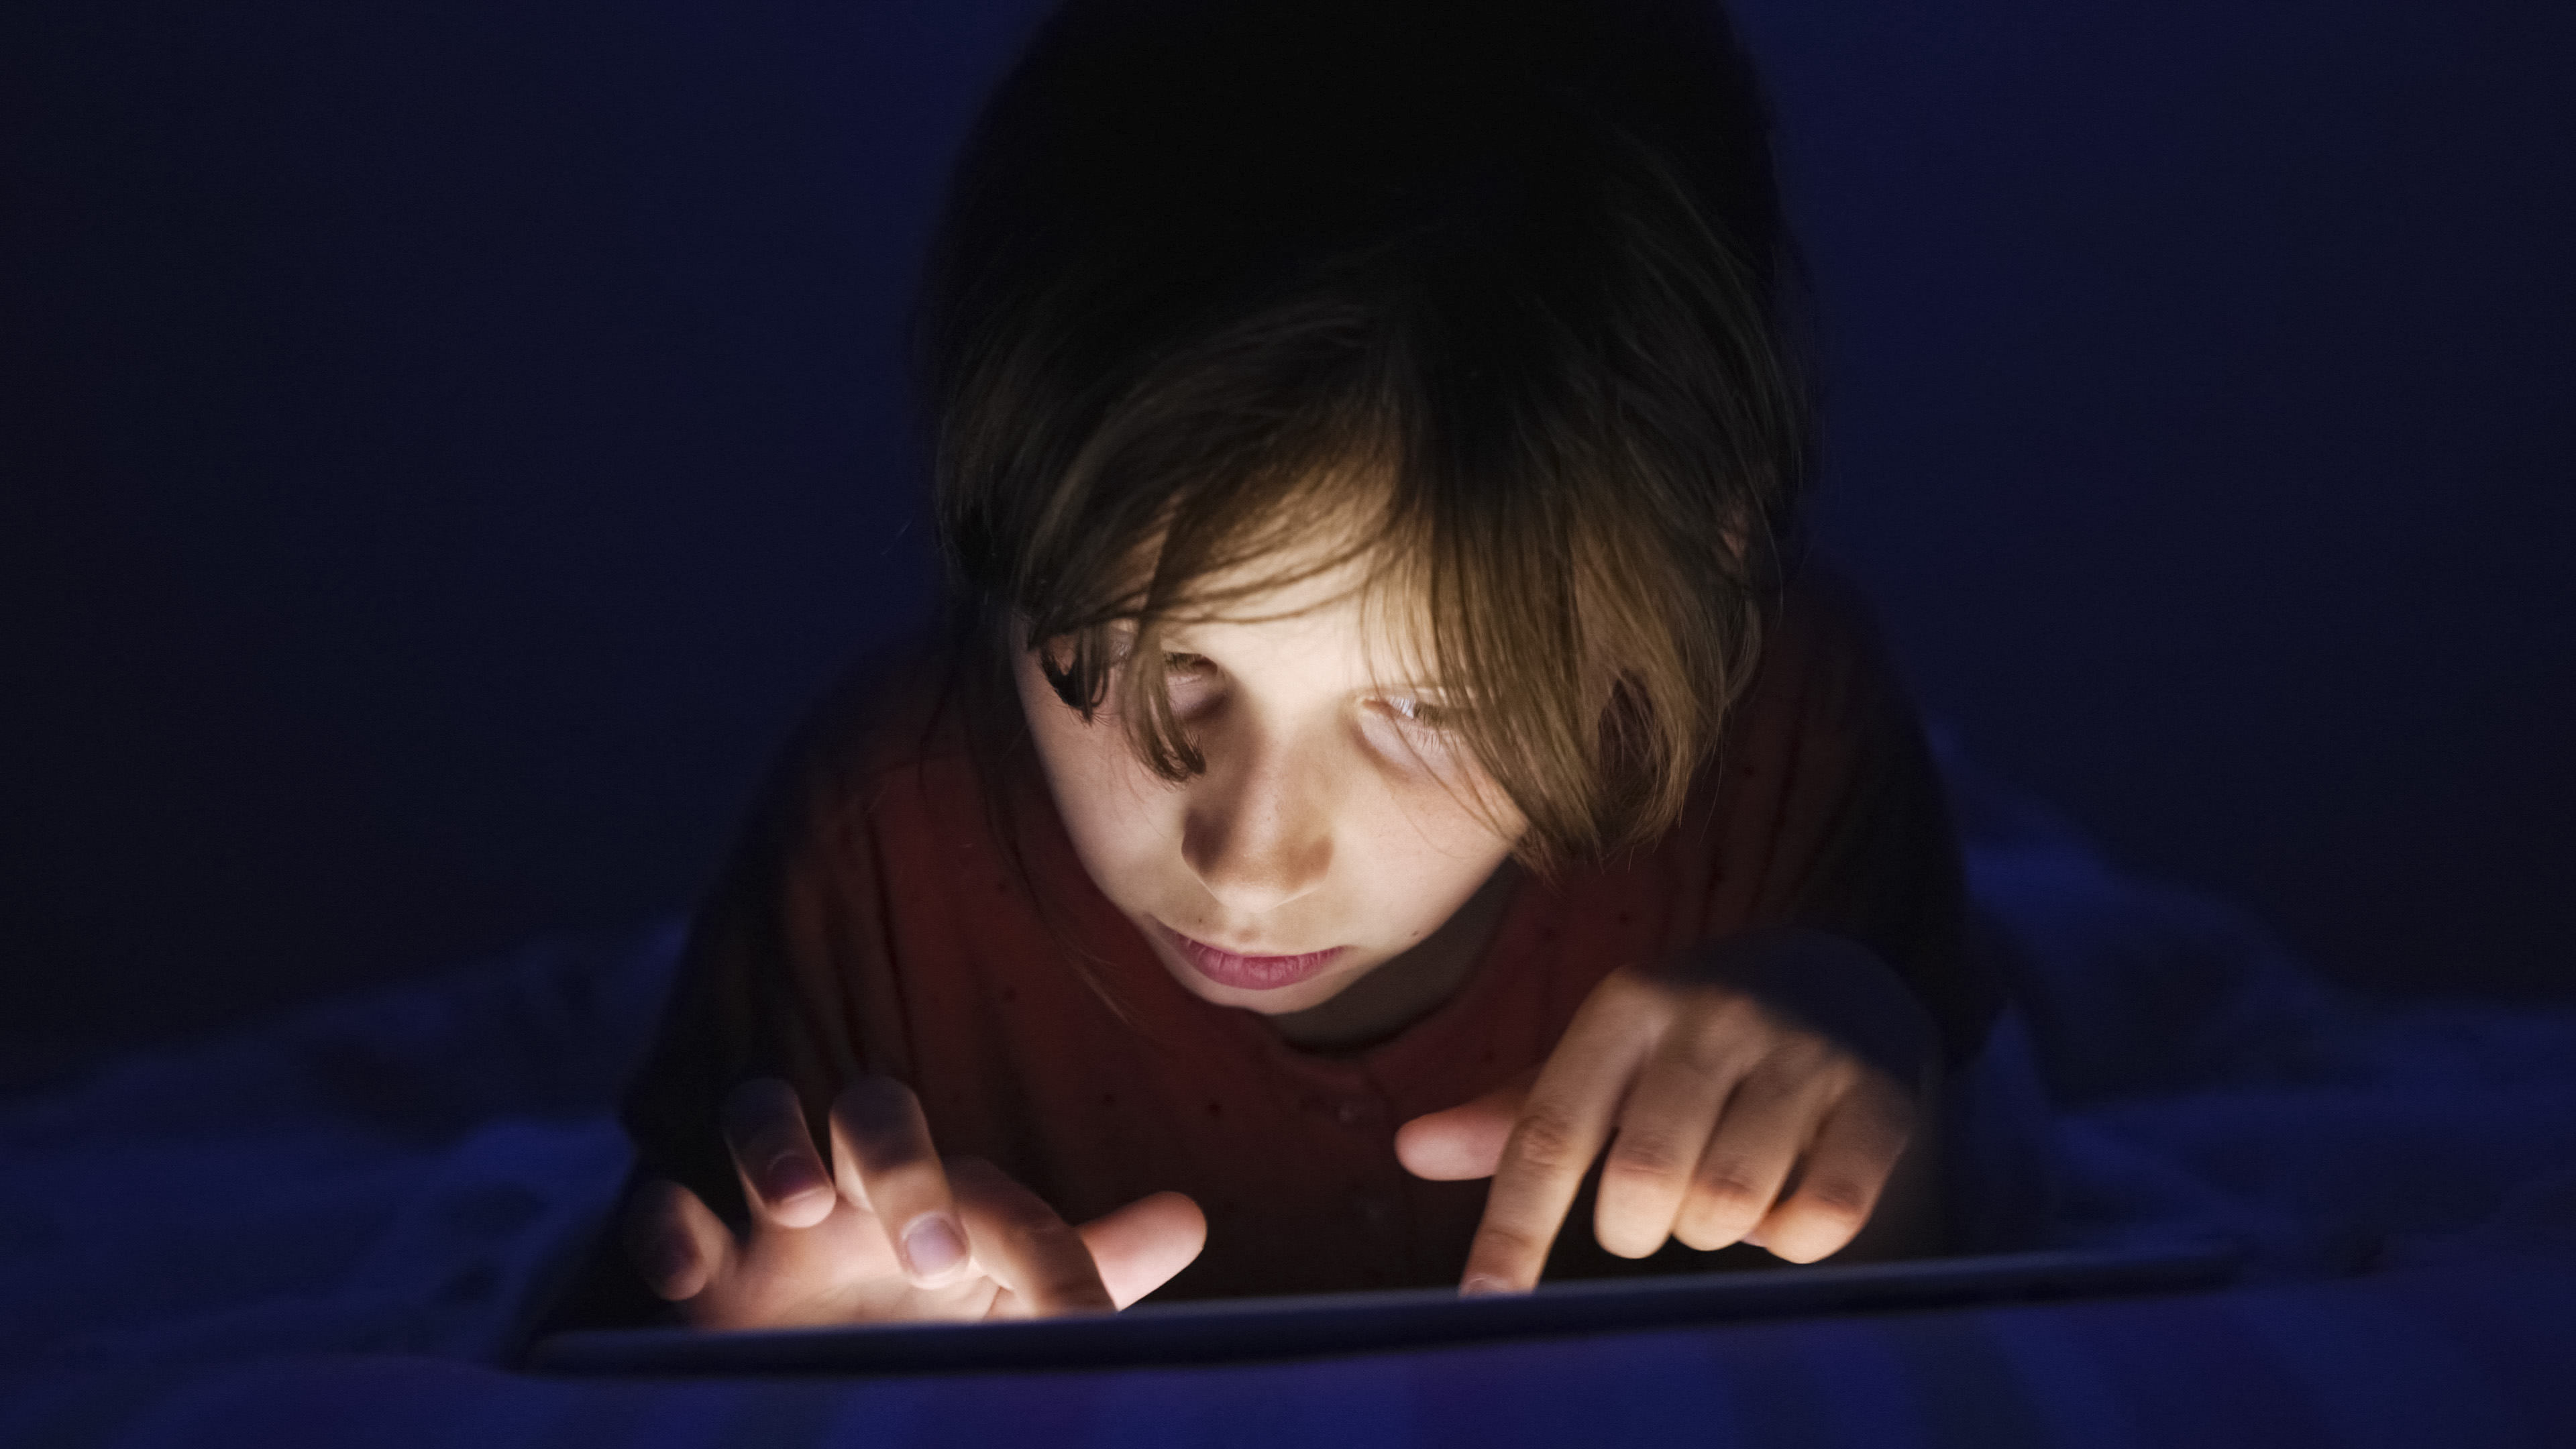 Young child watching porn late at night